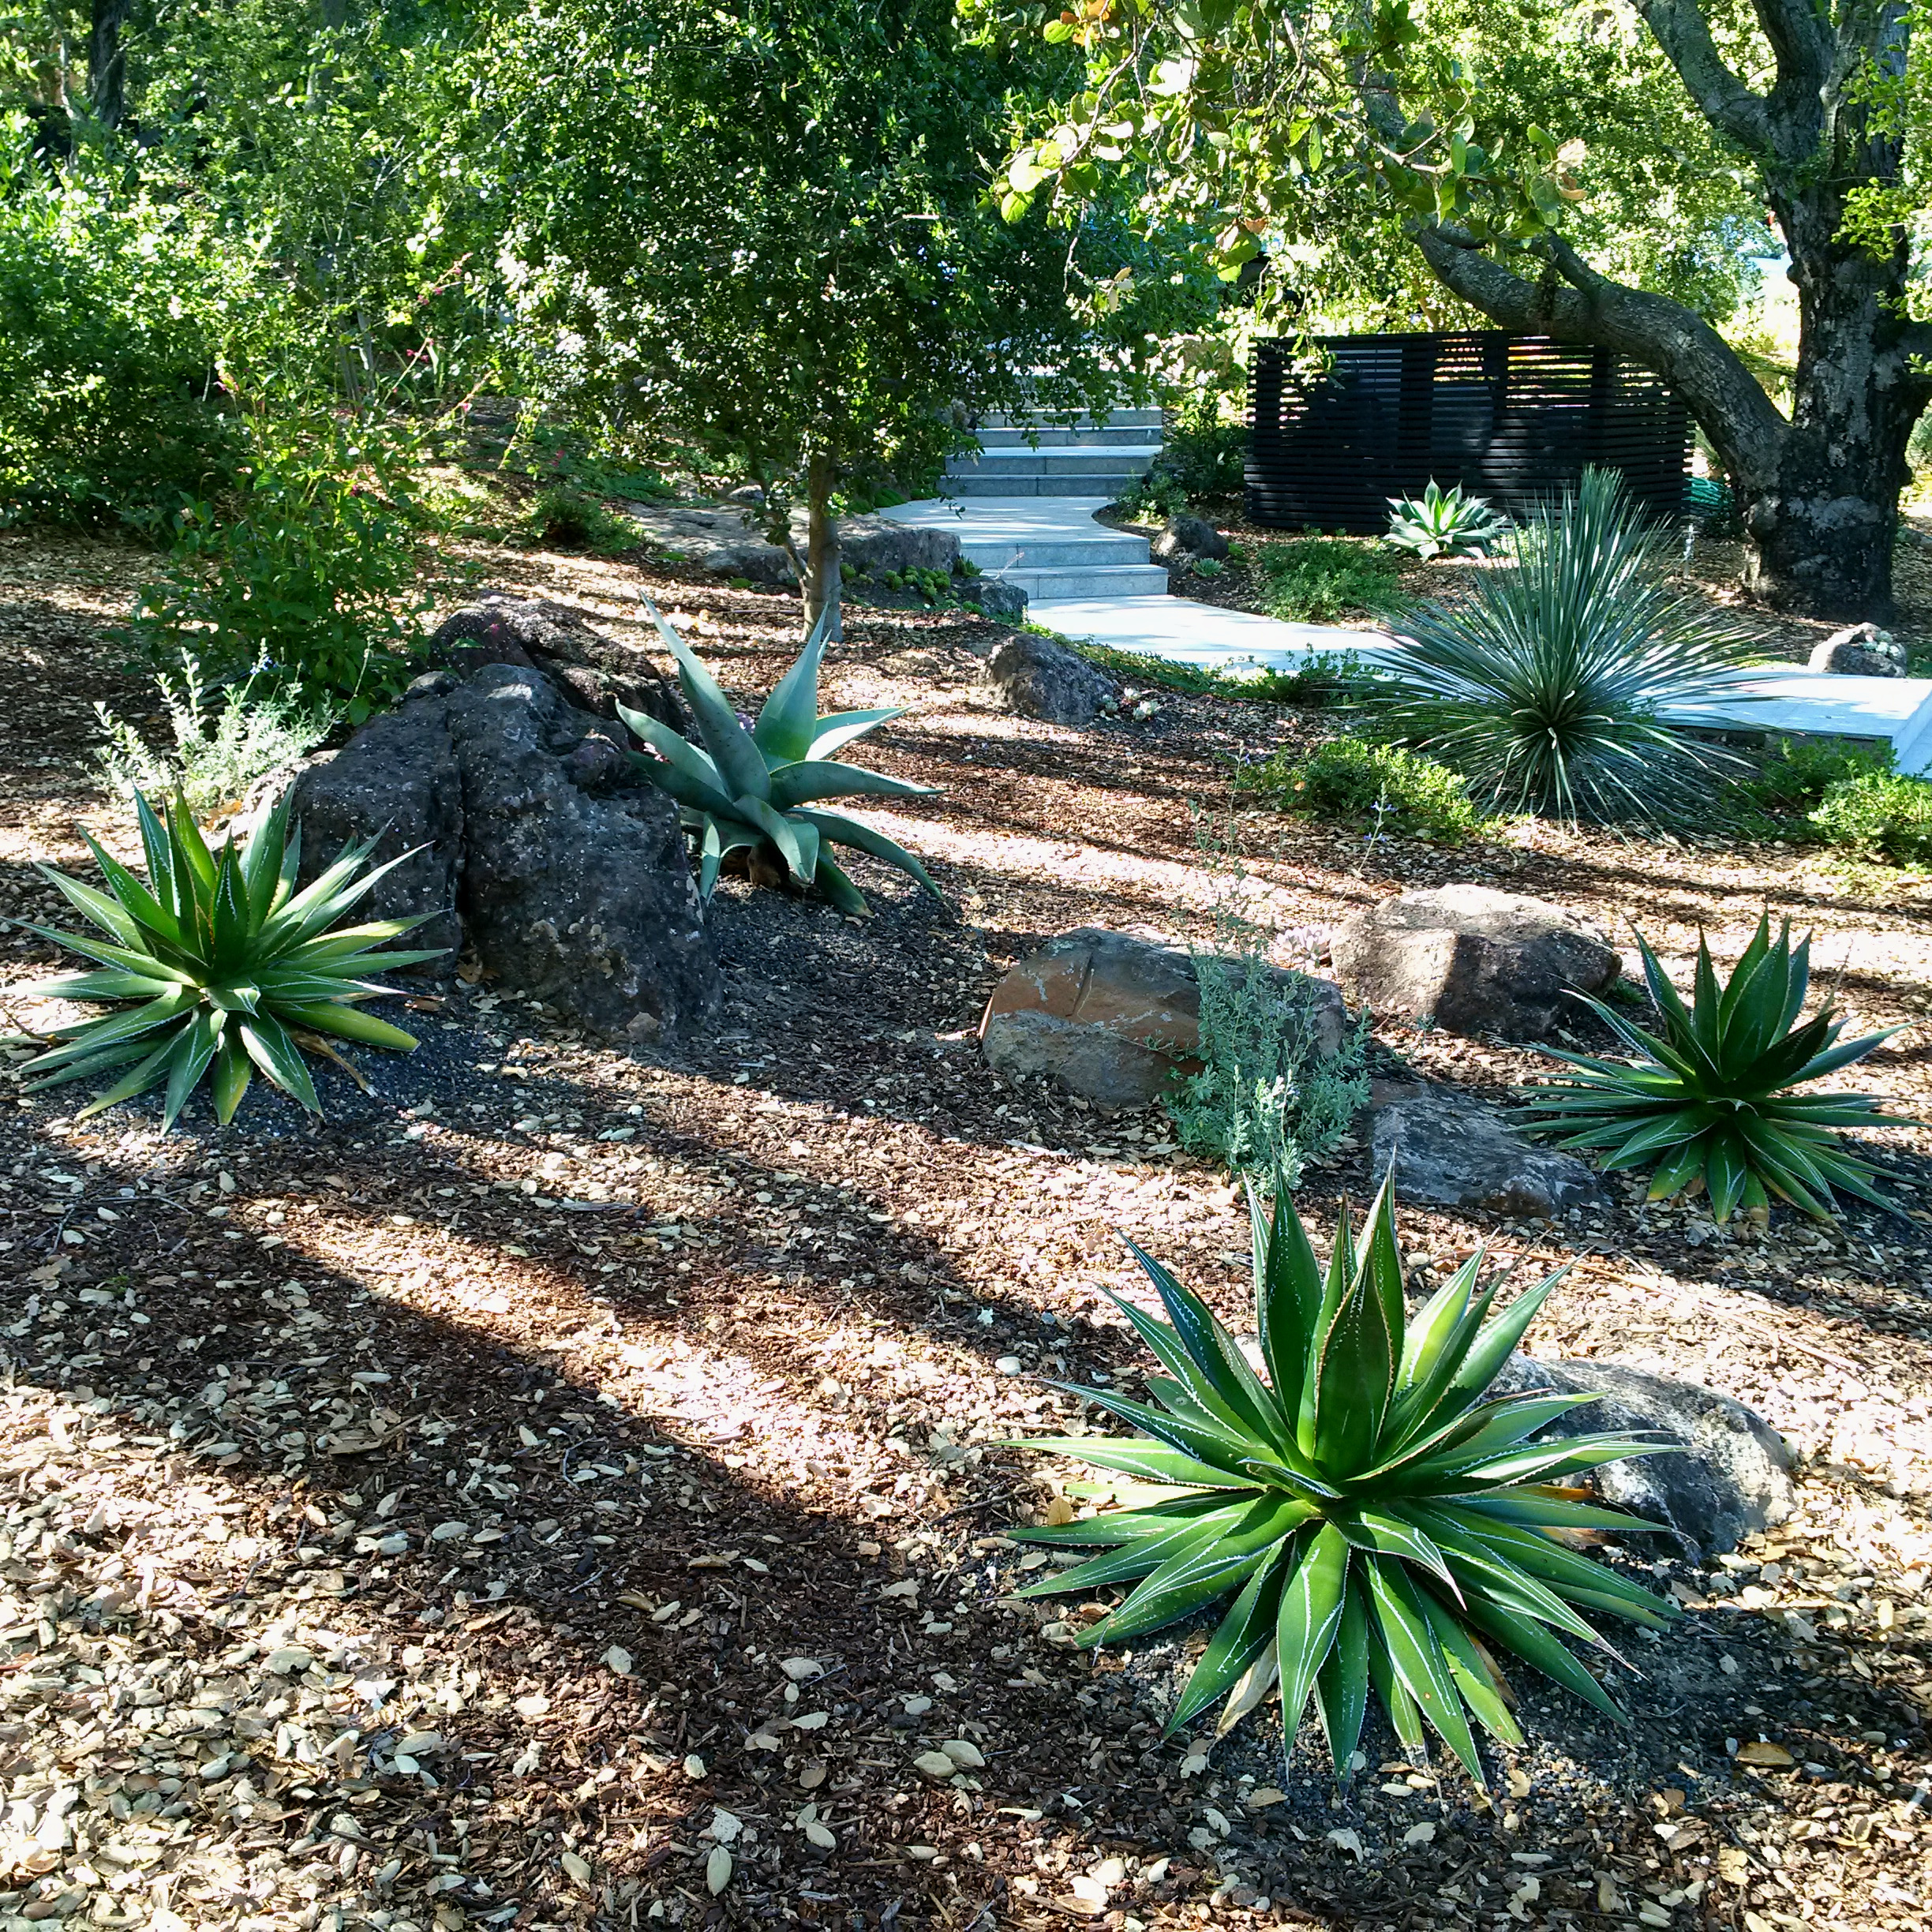 Use of overhead canopy and basalt boulders as heat sinks to successfully grow tropical agave species ( Agave impressa  and  A. guiengola  shown) in a garden that regularly experiences sub-30 degree F winter lows. Privare garden on the Peninsula, San Francisco Bay Area, California. Author's design.